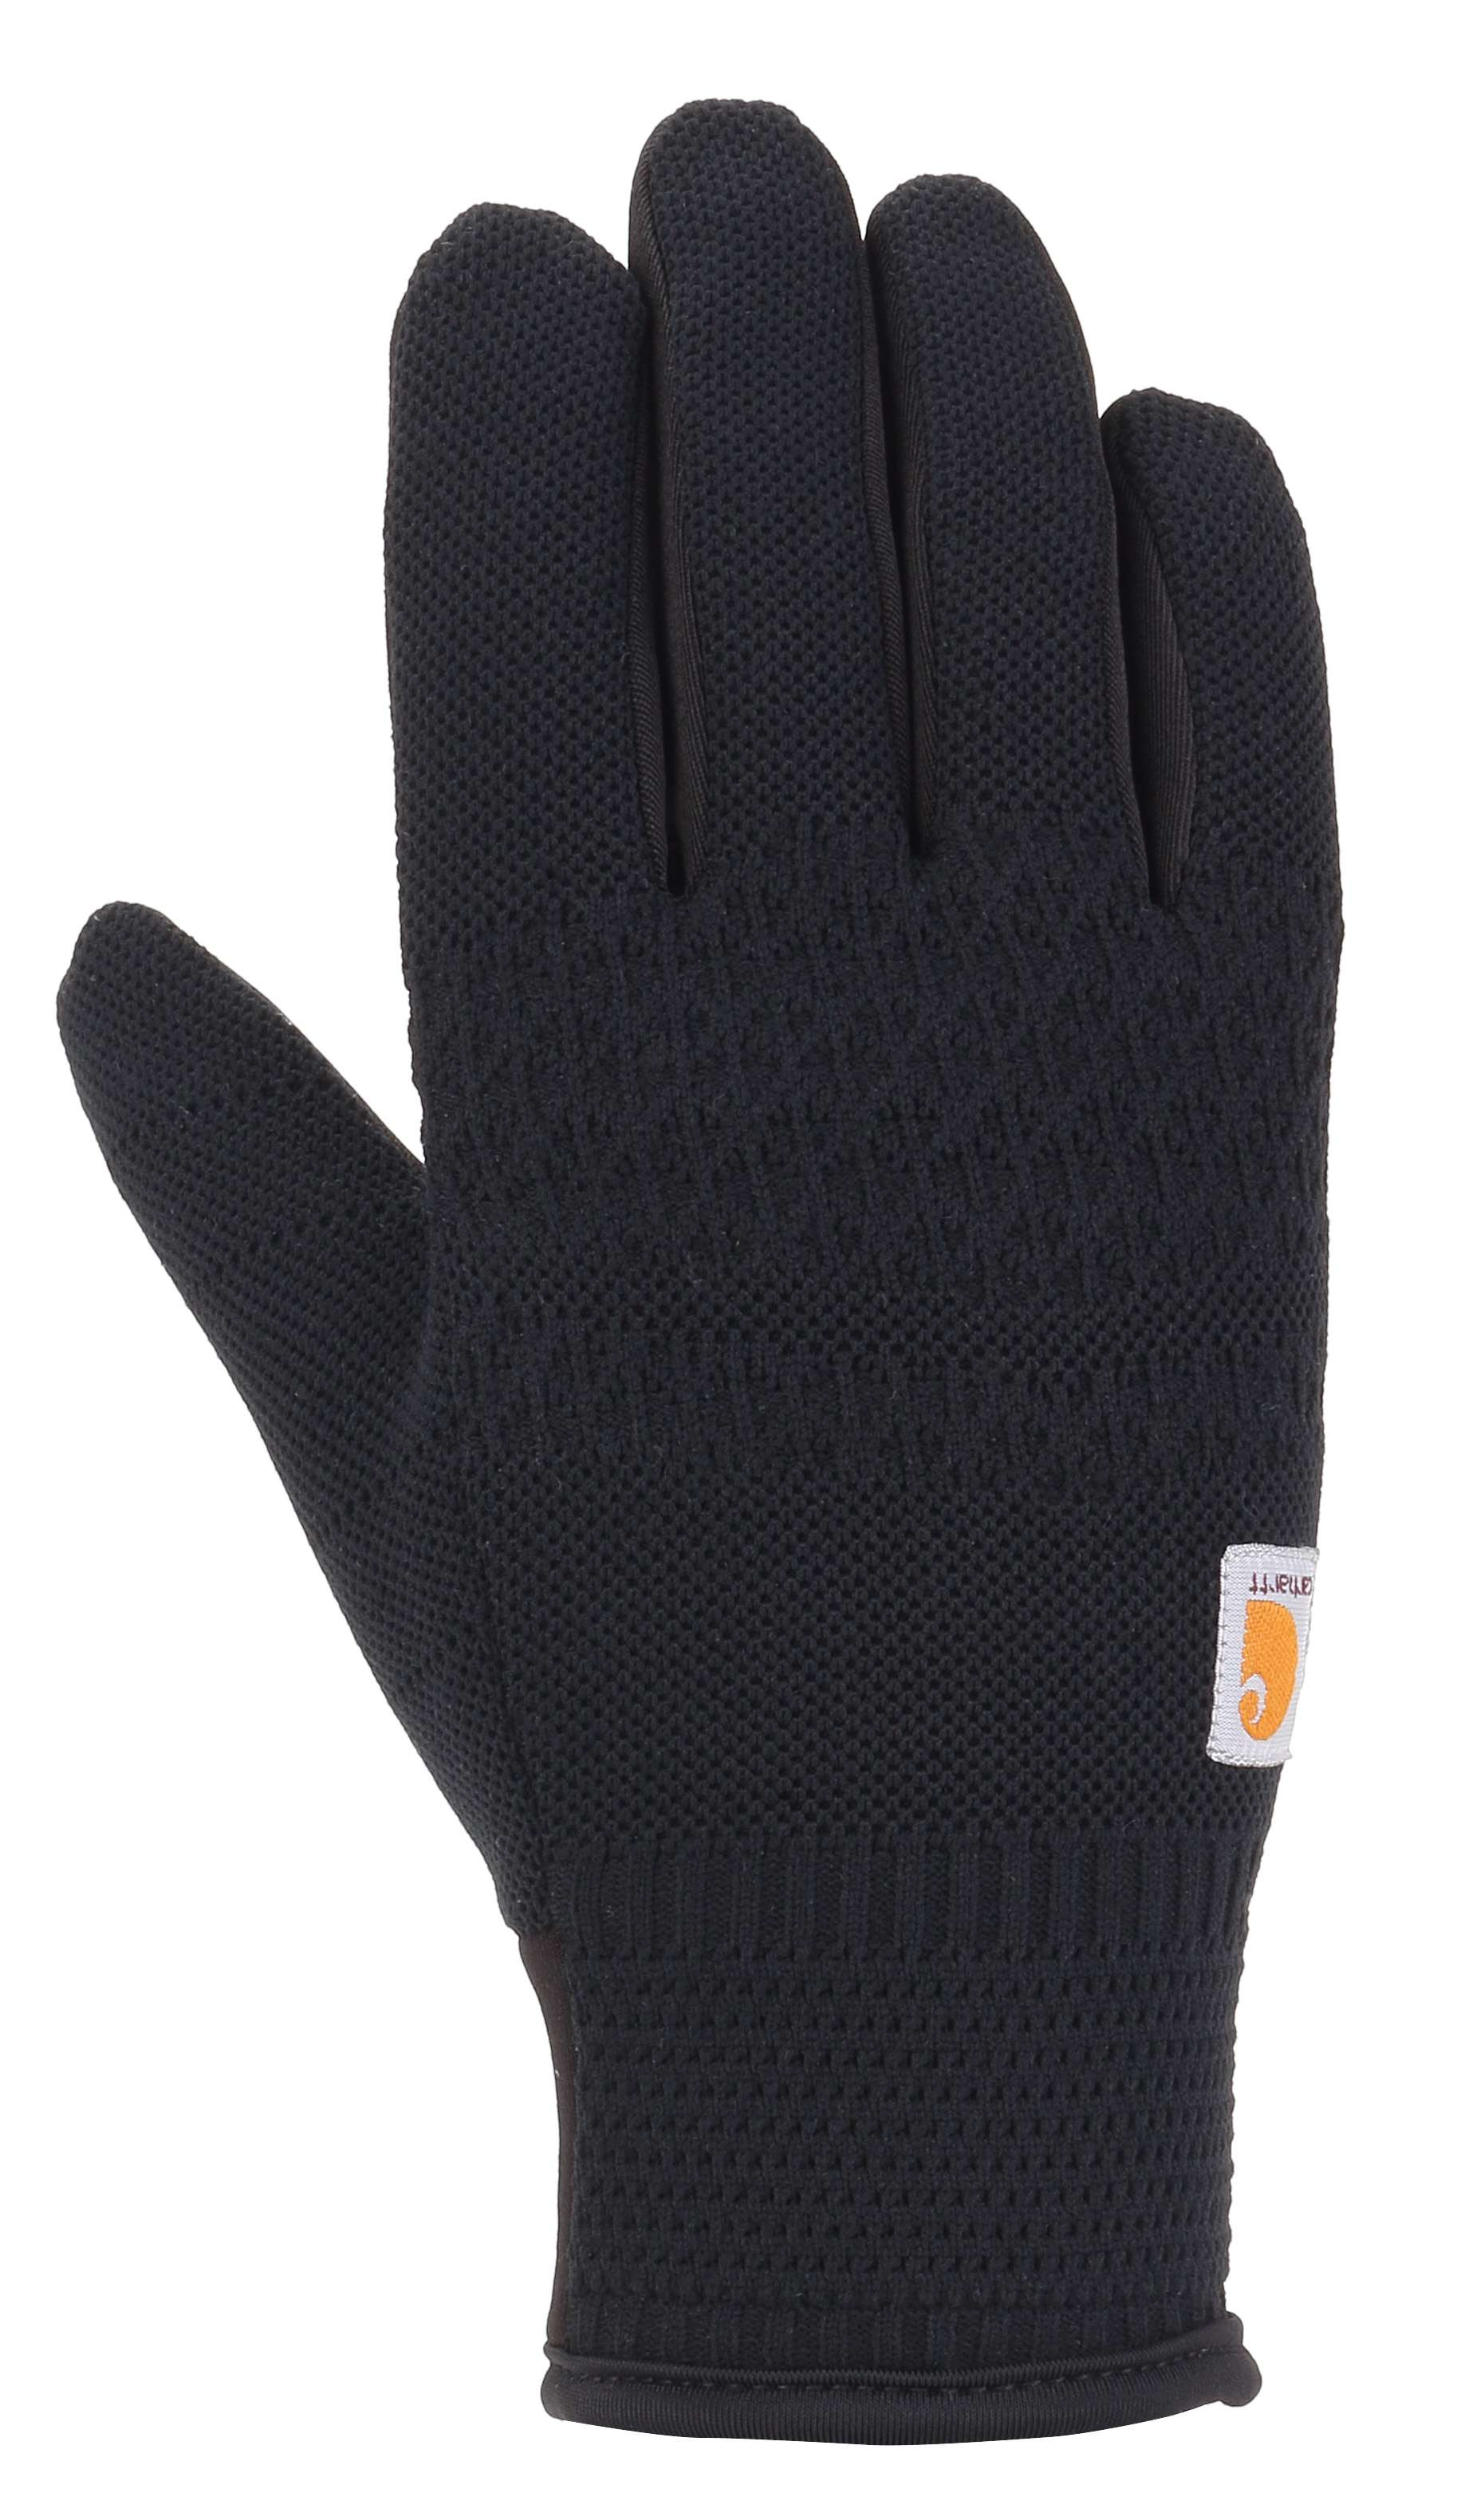 Carhartt Roboknit Insulated Glove